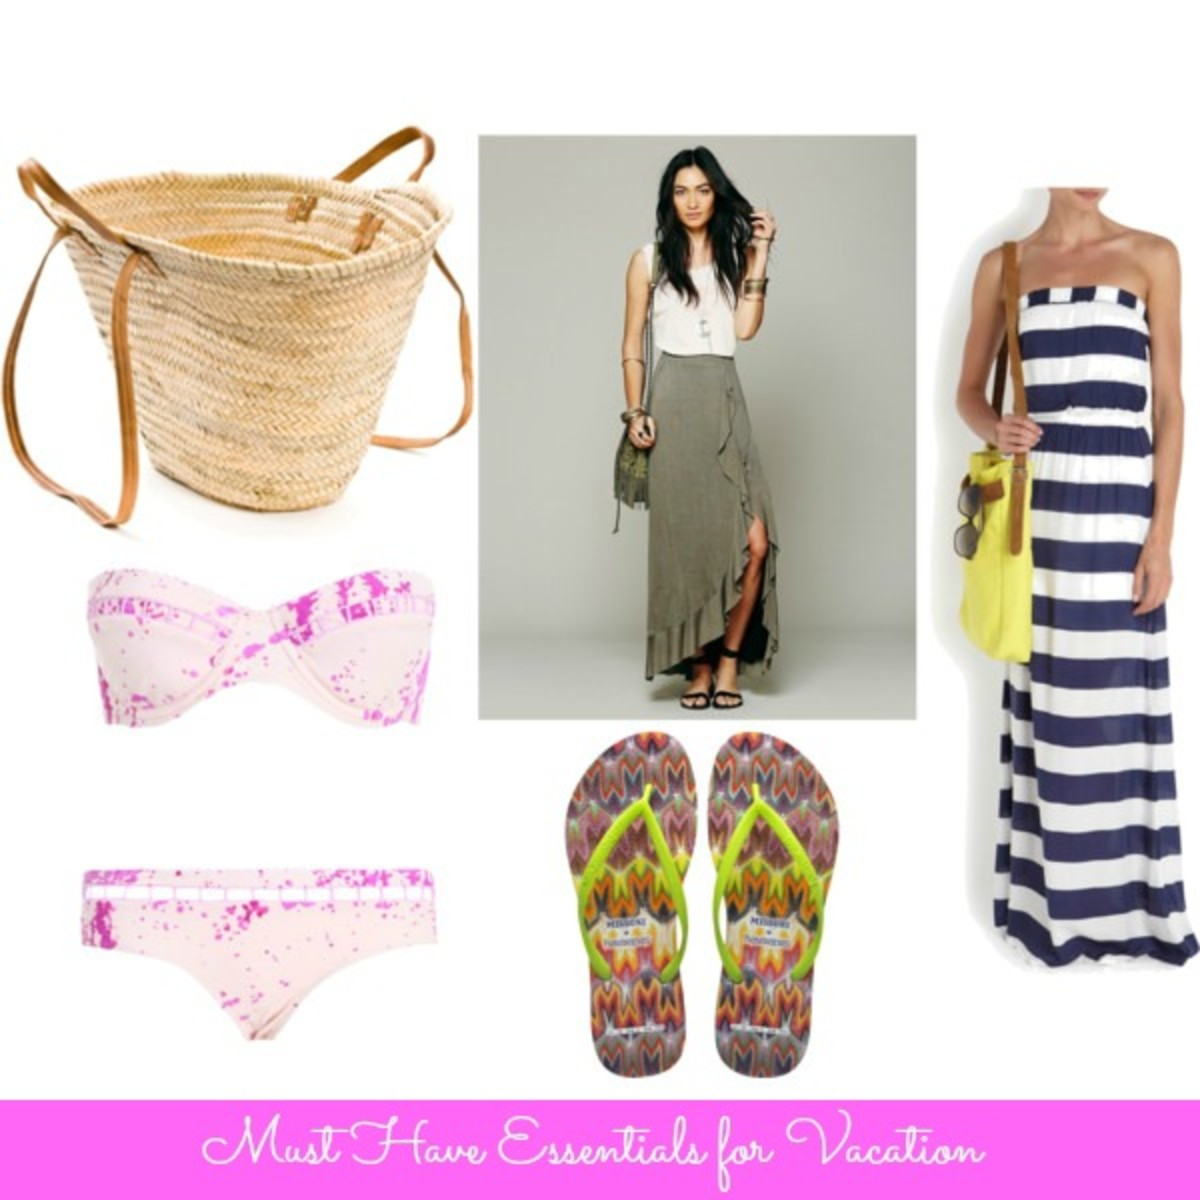 vacation essentials, items for moms